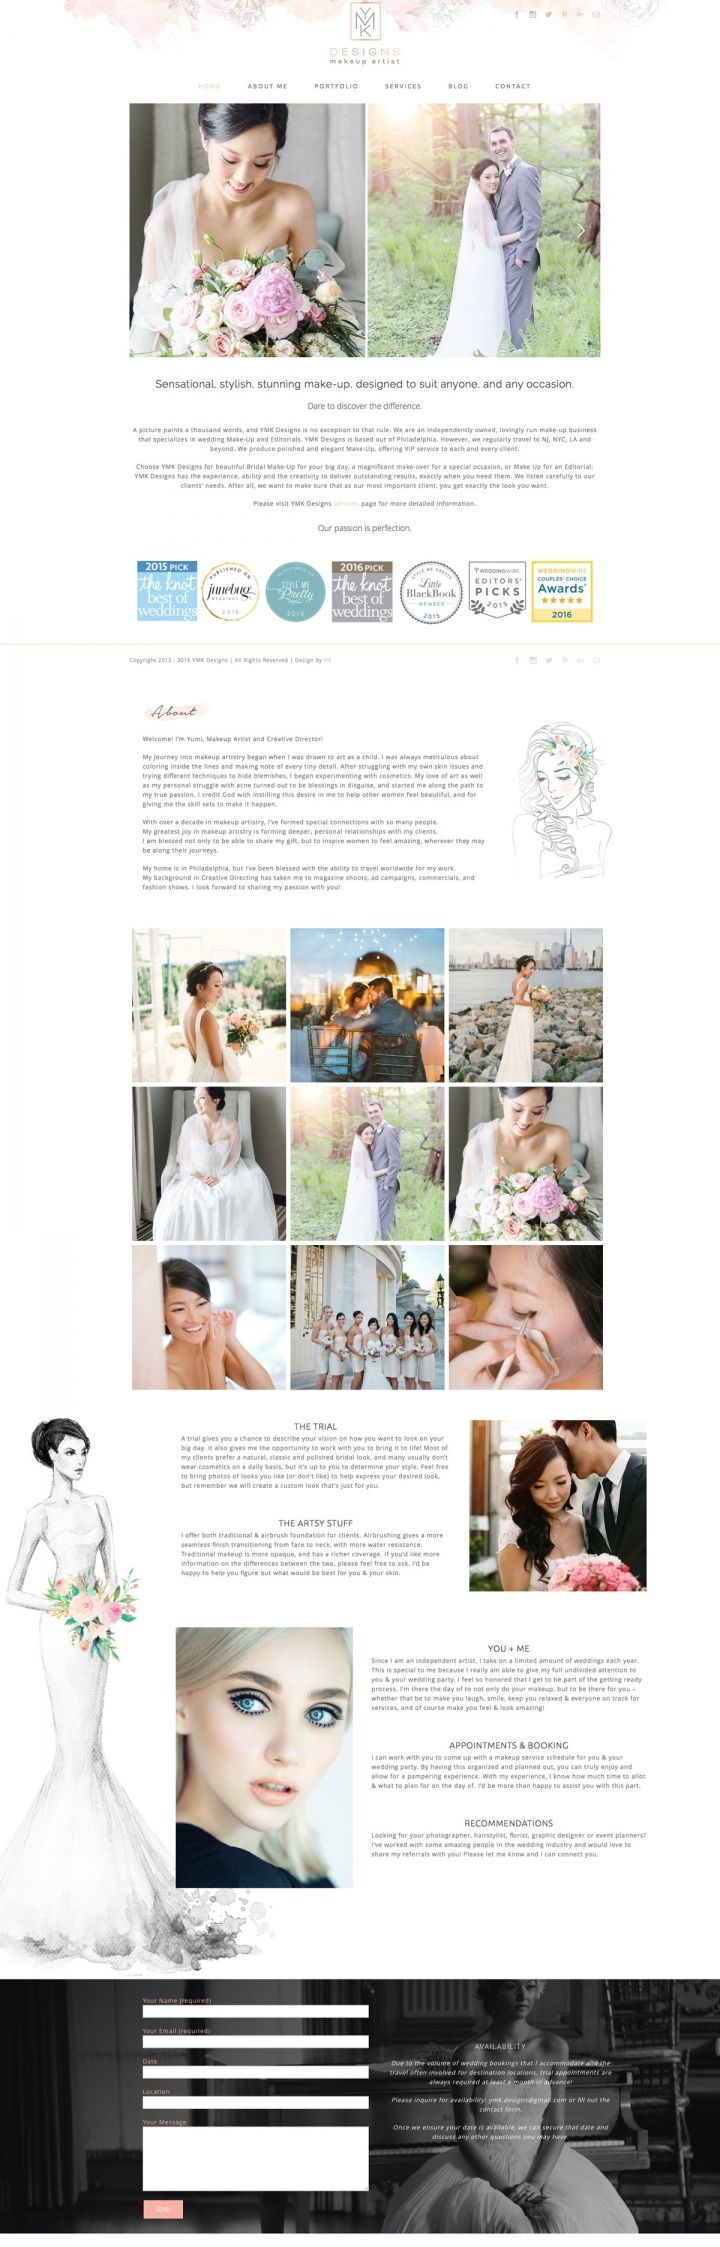 makeup artist, website design, wedding website, design, elegant, website